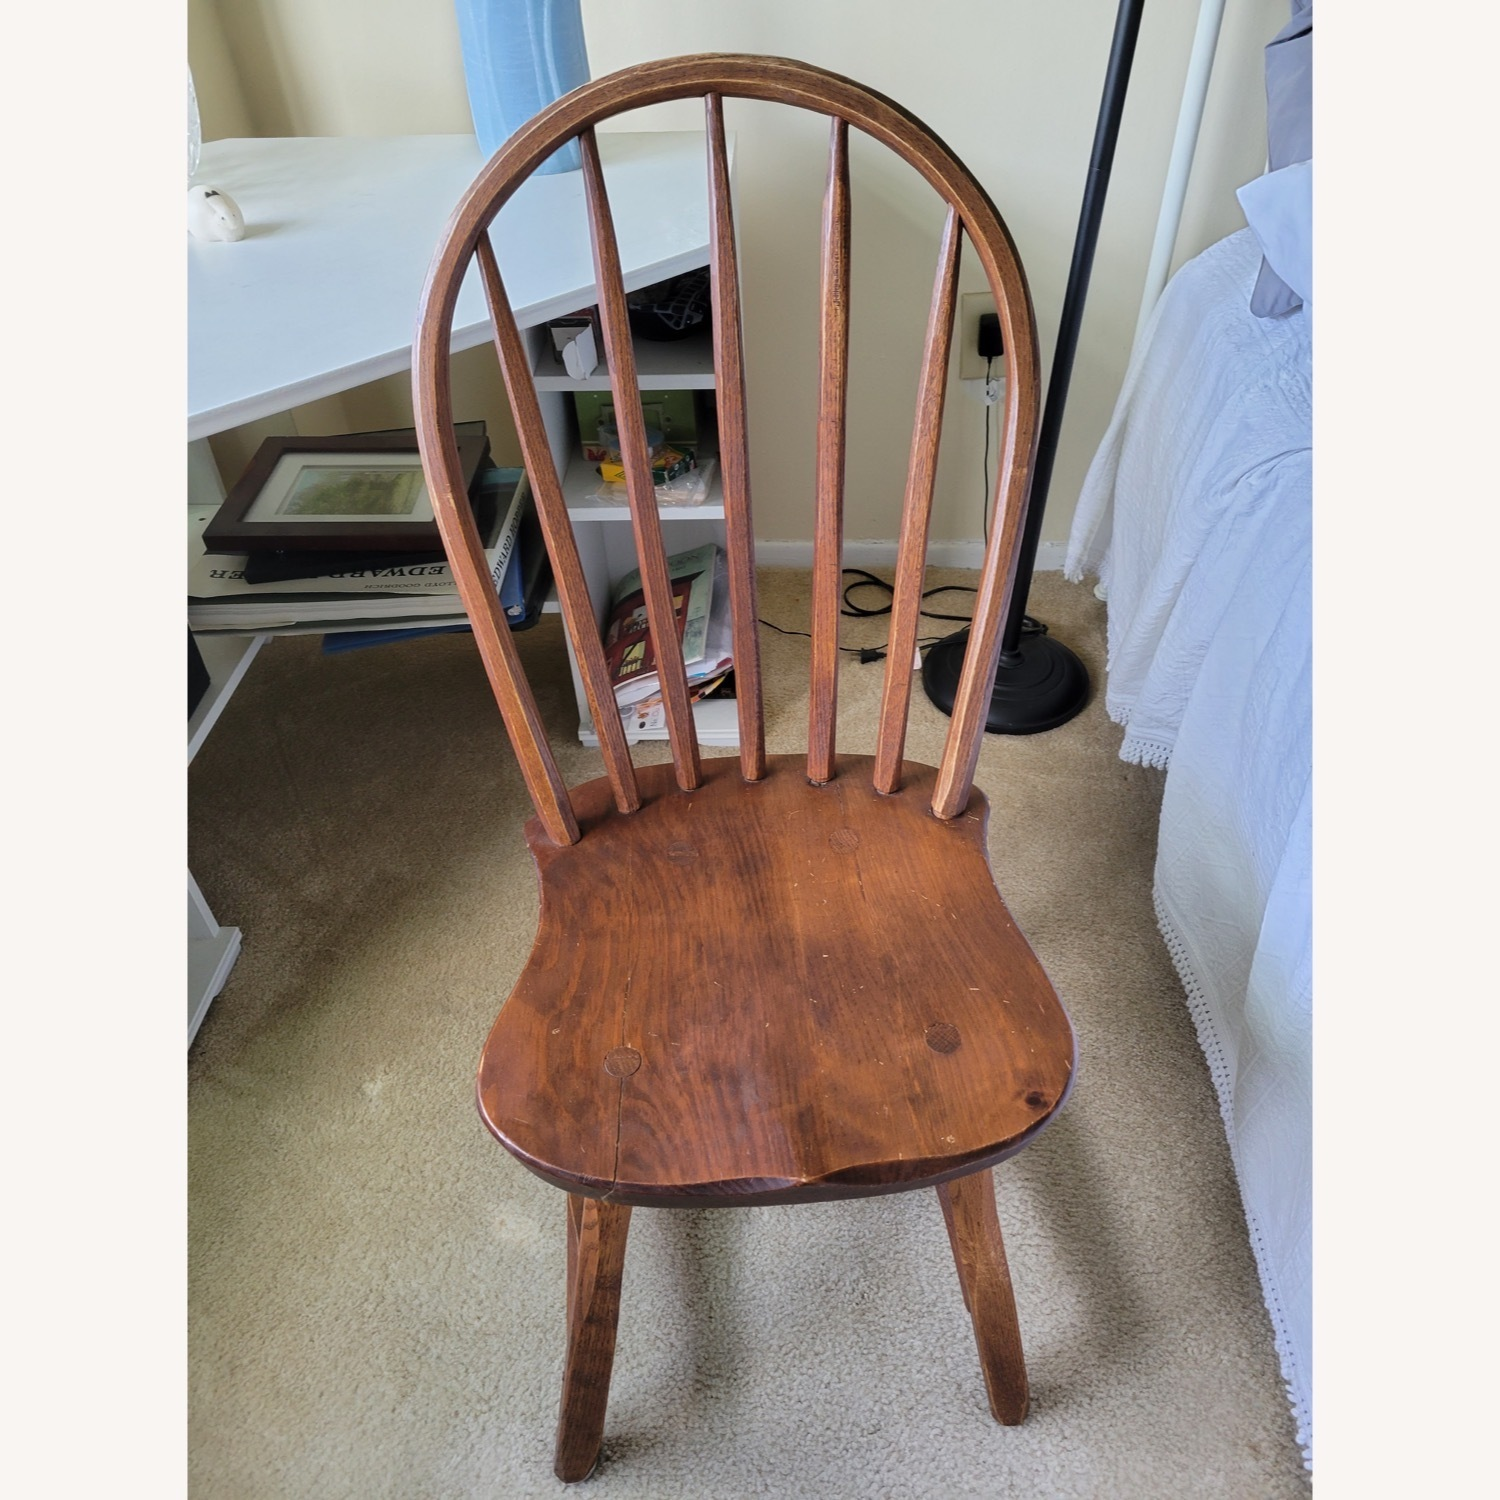 Curved Hunt Furniture Wood Chairs - image-2